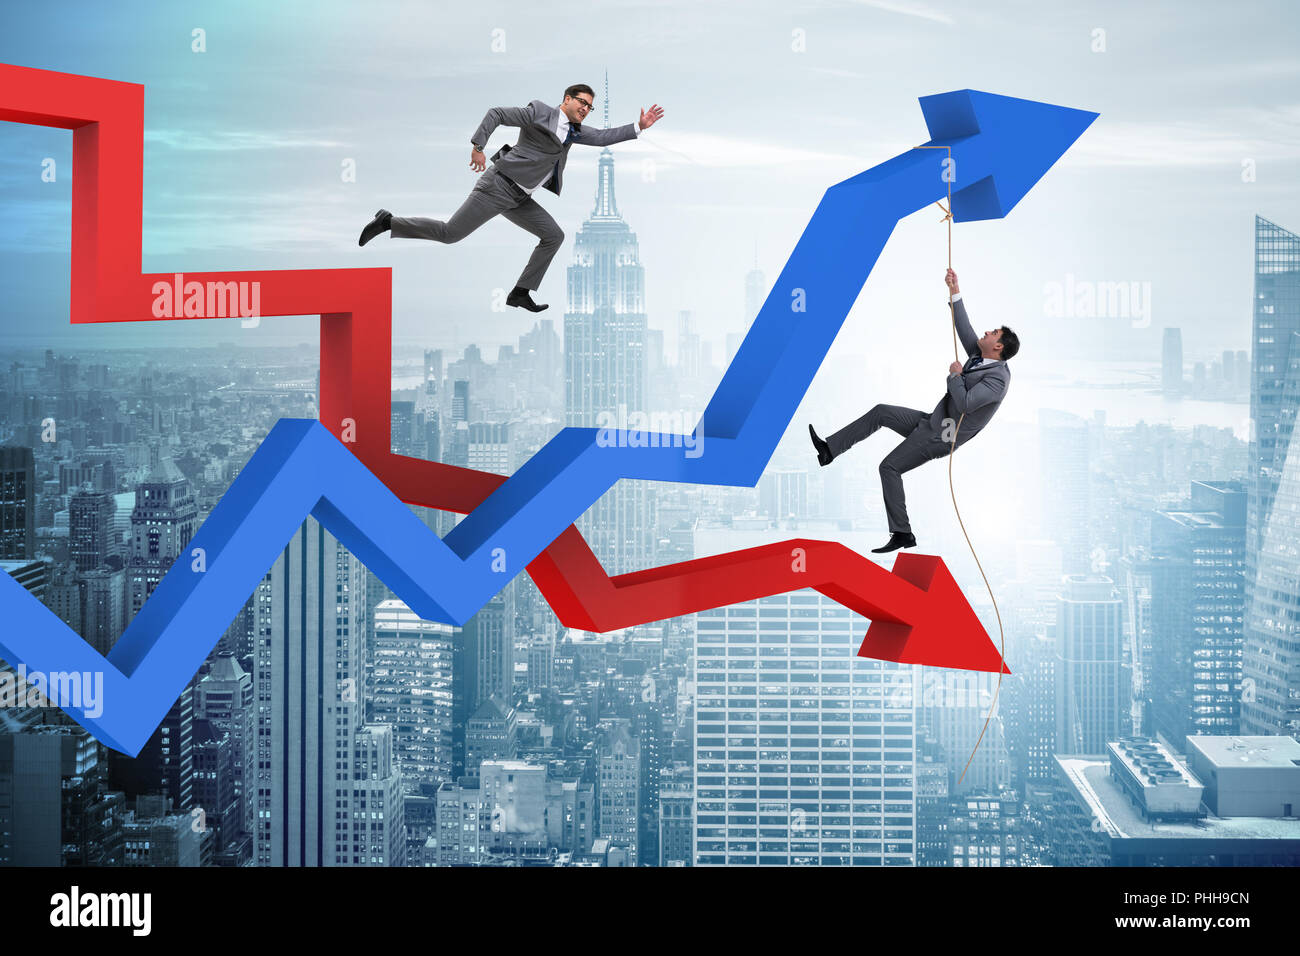 Business concept of both crisis and recovery Stock Photo